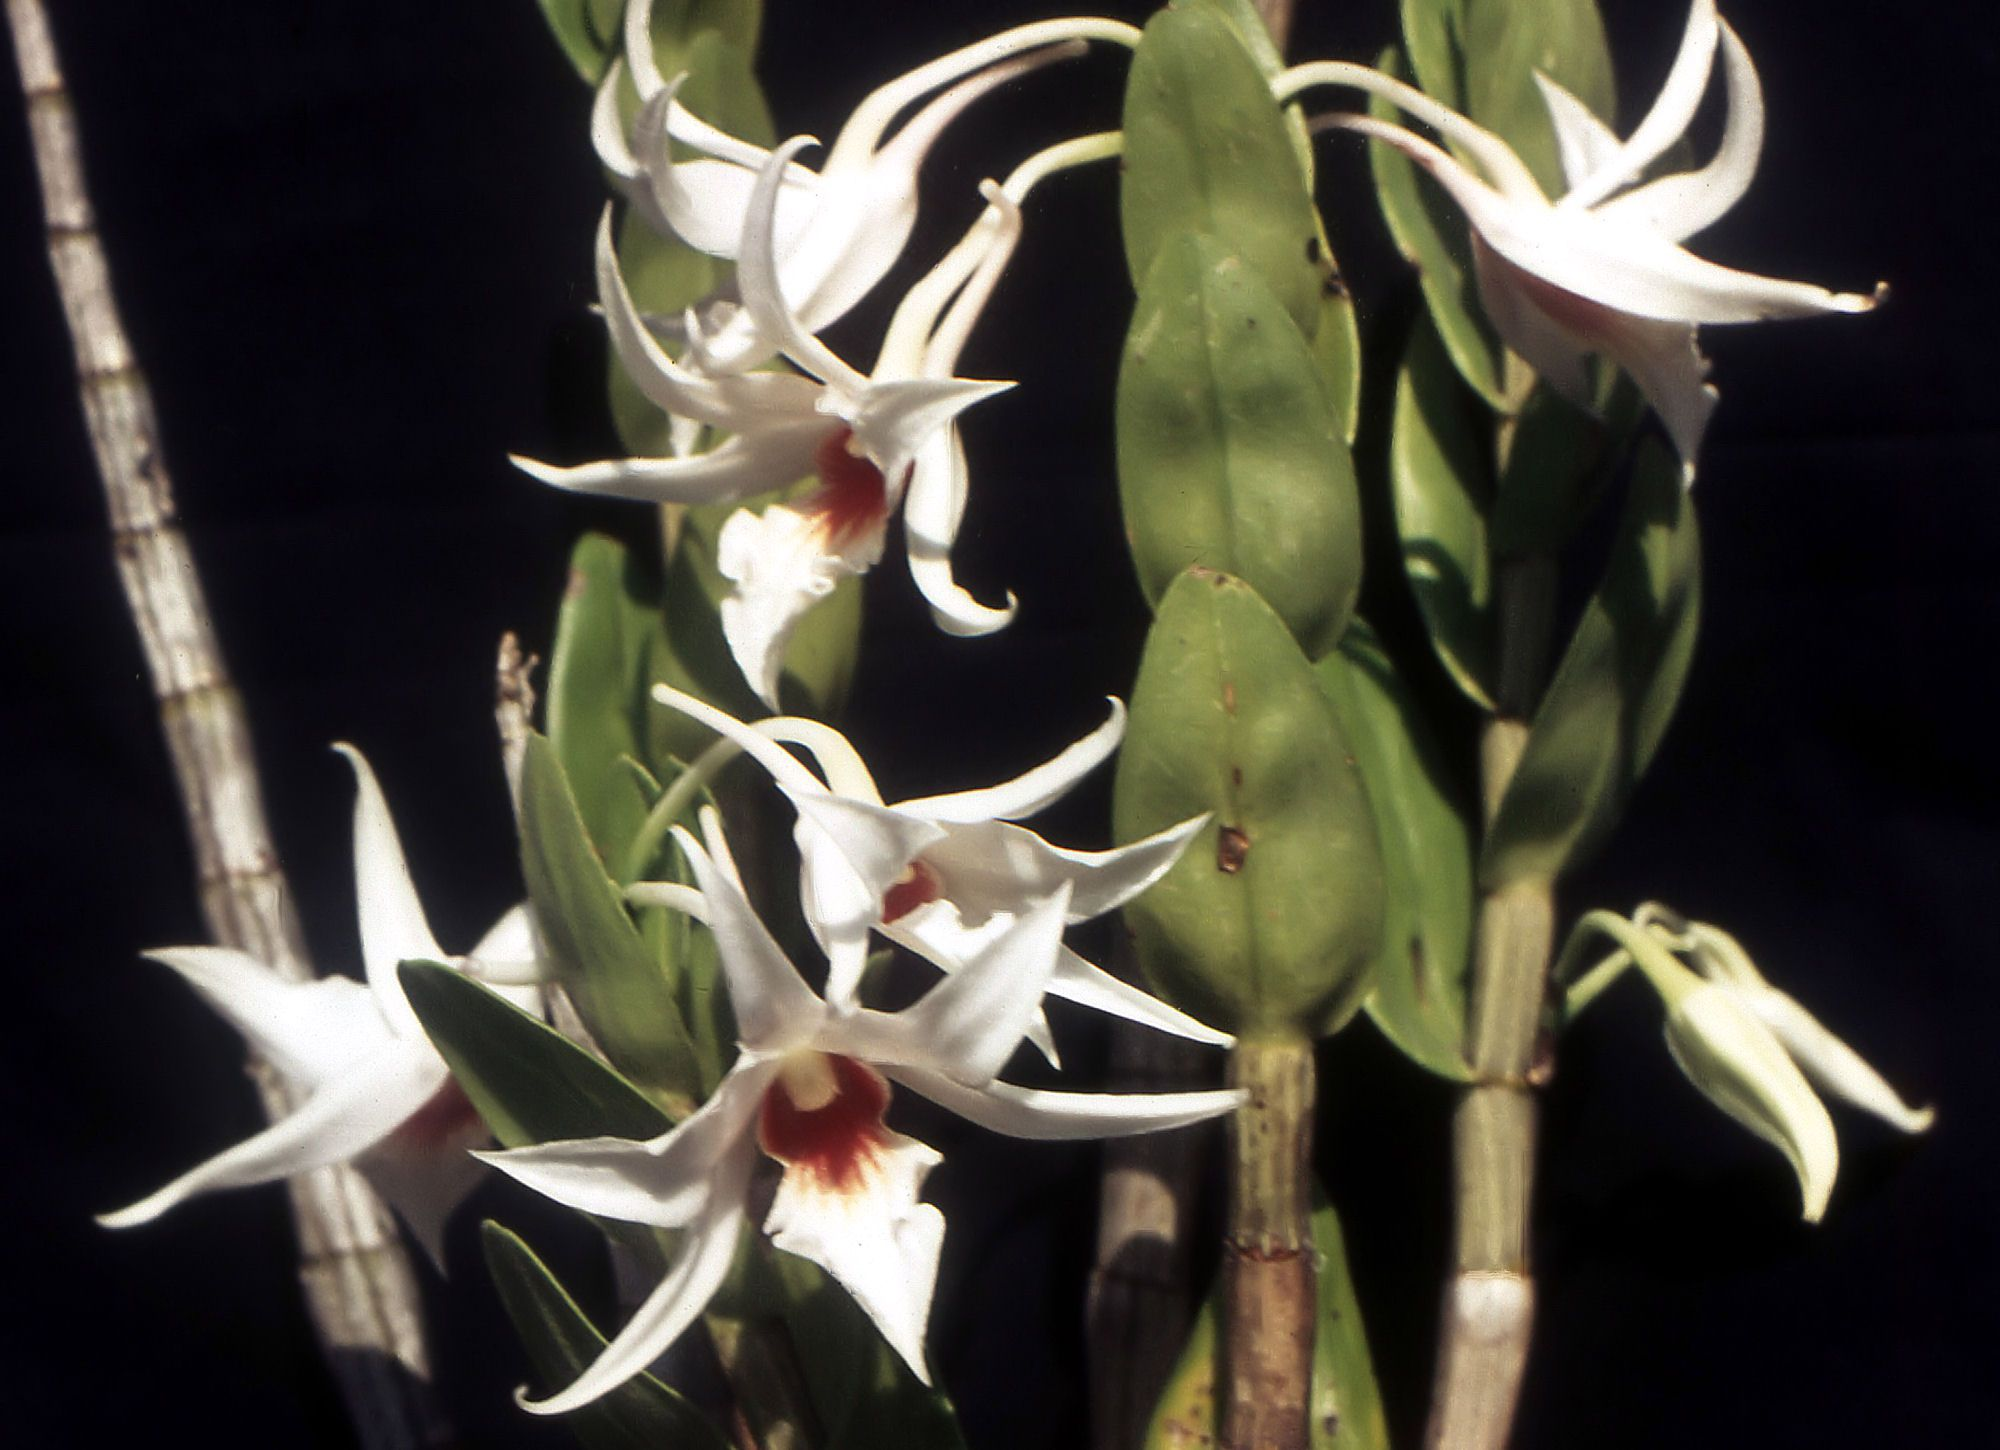 http://upload.wikimedia.org/wikipedia/commons/1/10/Dendrobium_draconis_Orchi_002.jpg